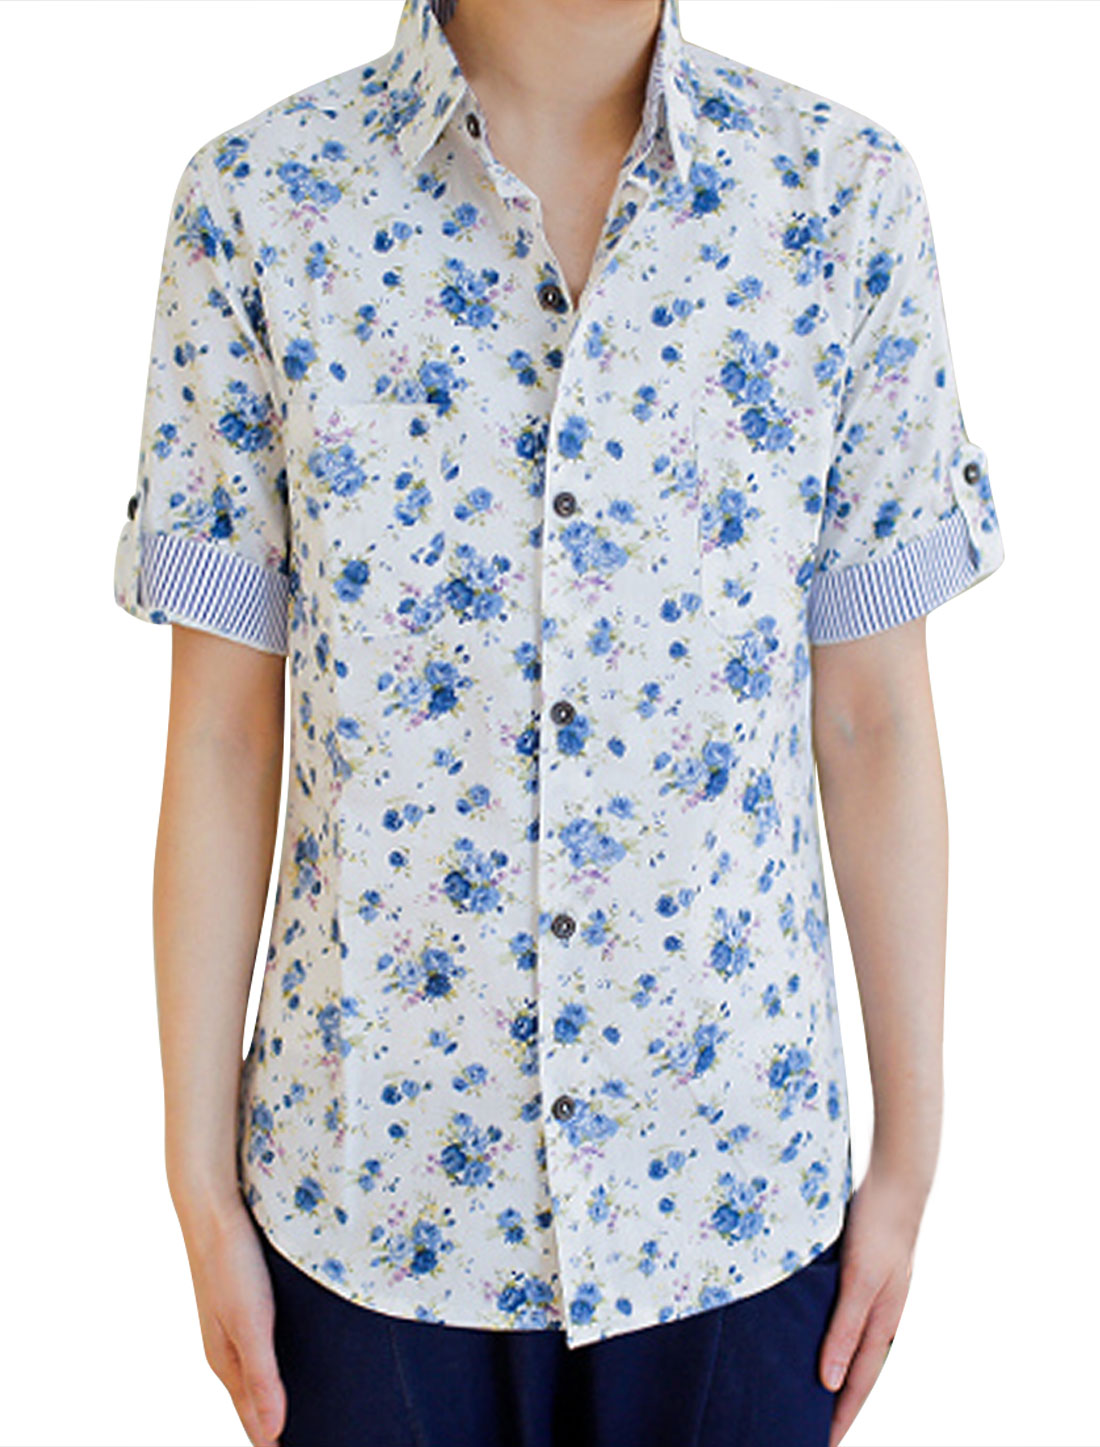 Men White Blue Floral Patten Single Breasted Button Up Shirt M